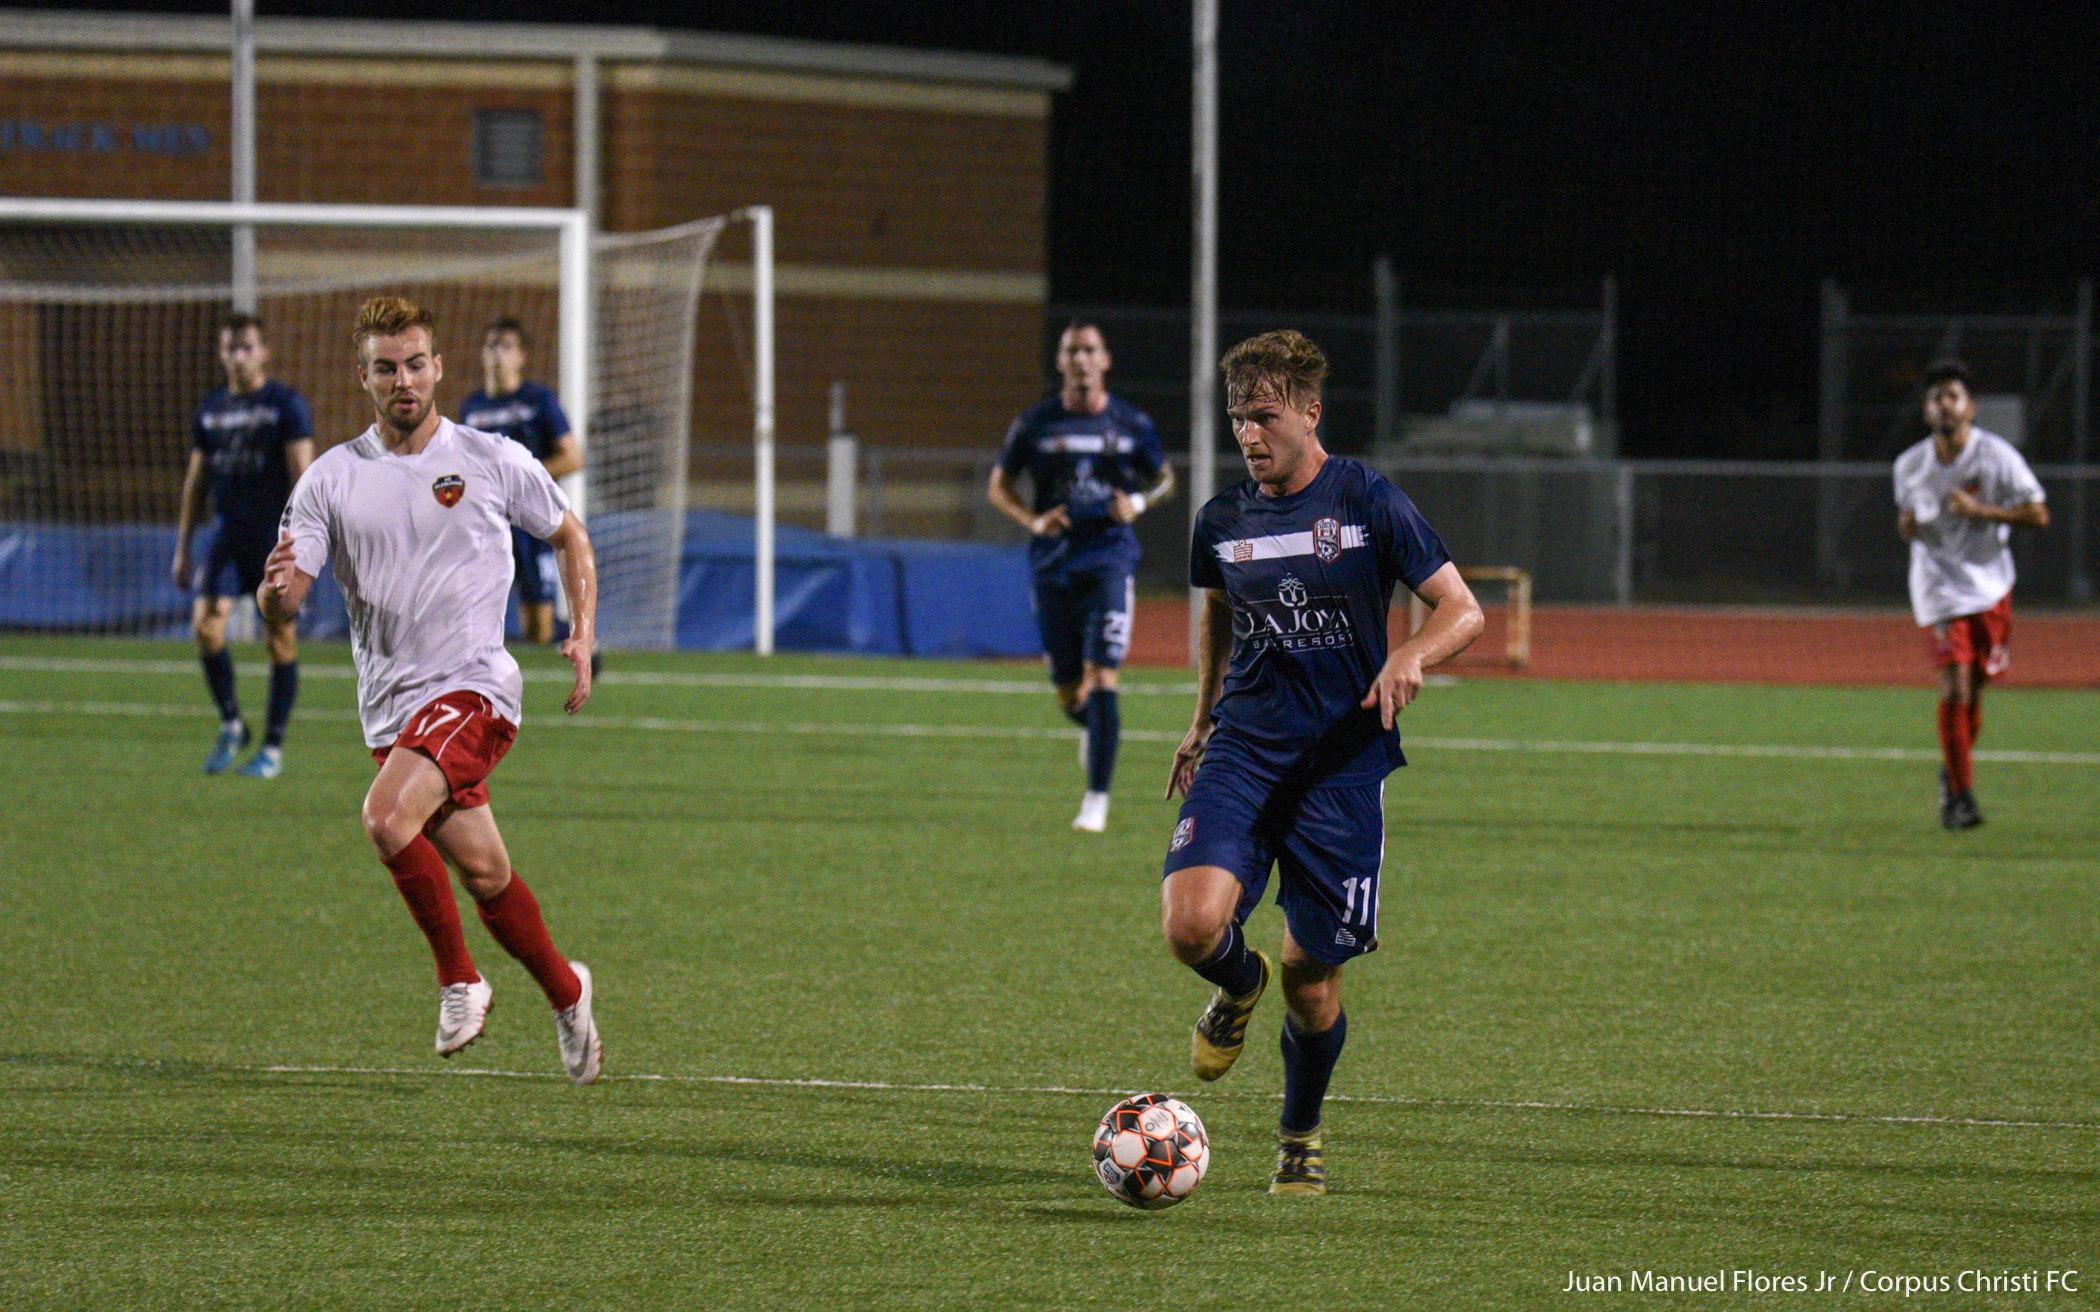 Corpus Christi FC Alumni Ben Conway Signs Professional Contract in England with Atherton Collieries F.C